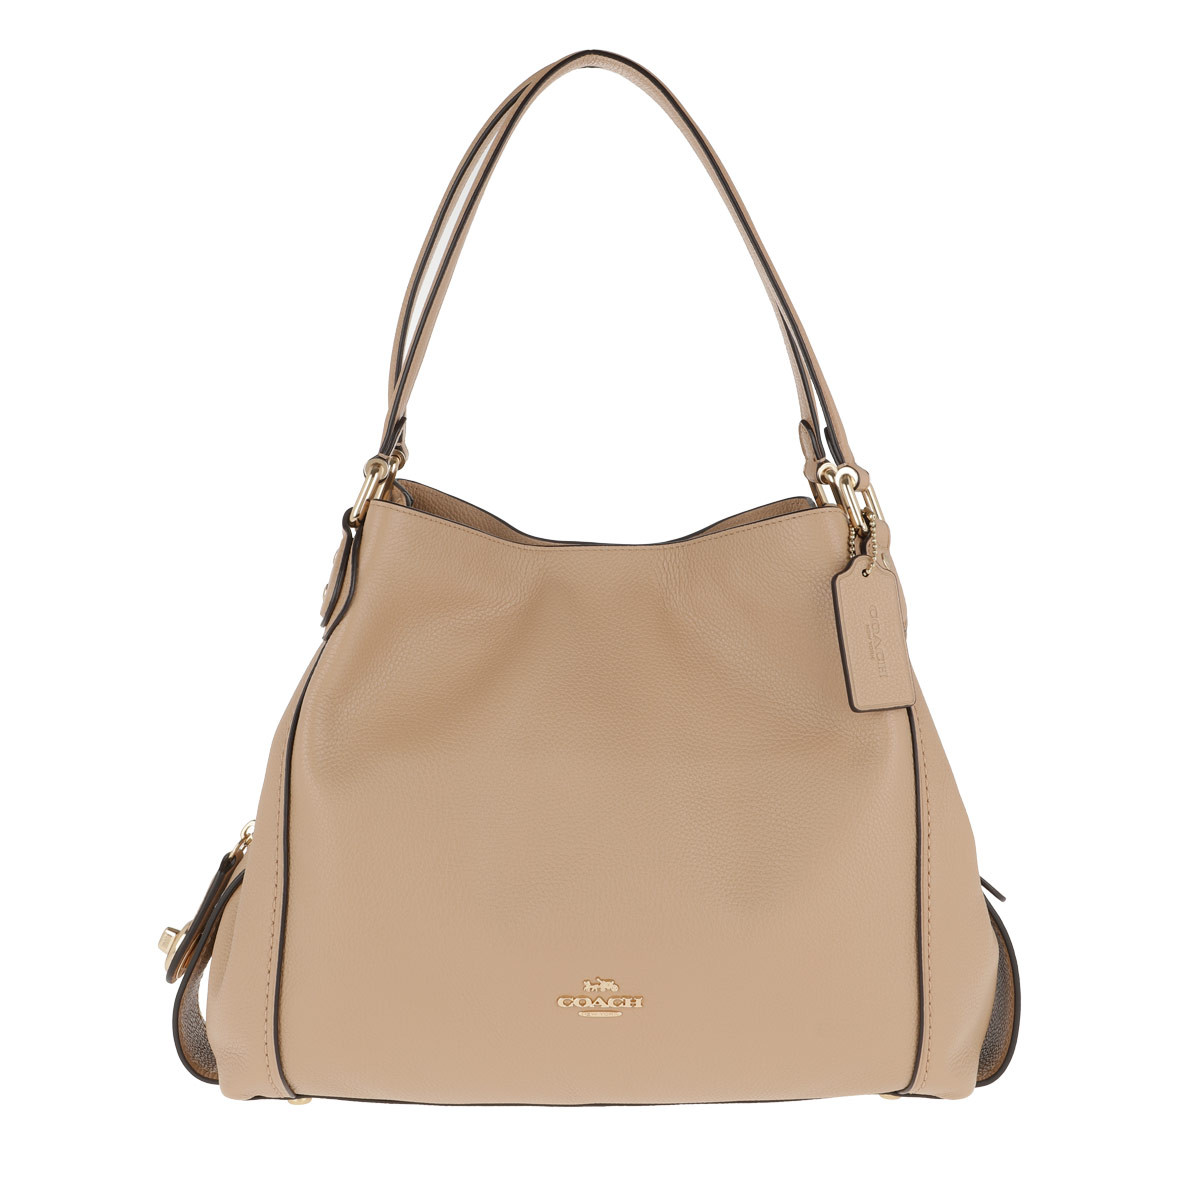 Coach Tote - Polished Pebble Leather Edie 31 Shoulder Bag Beechwood - in beige - für Damen